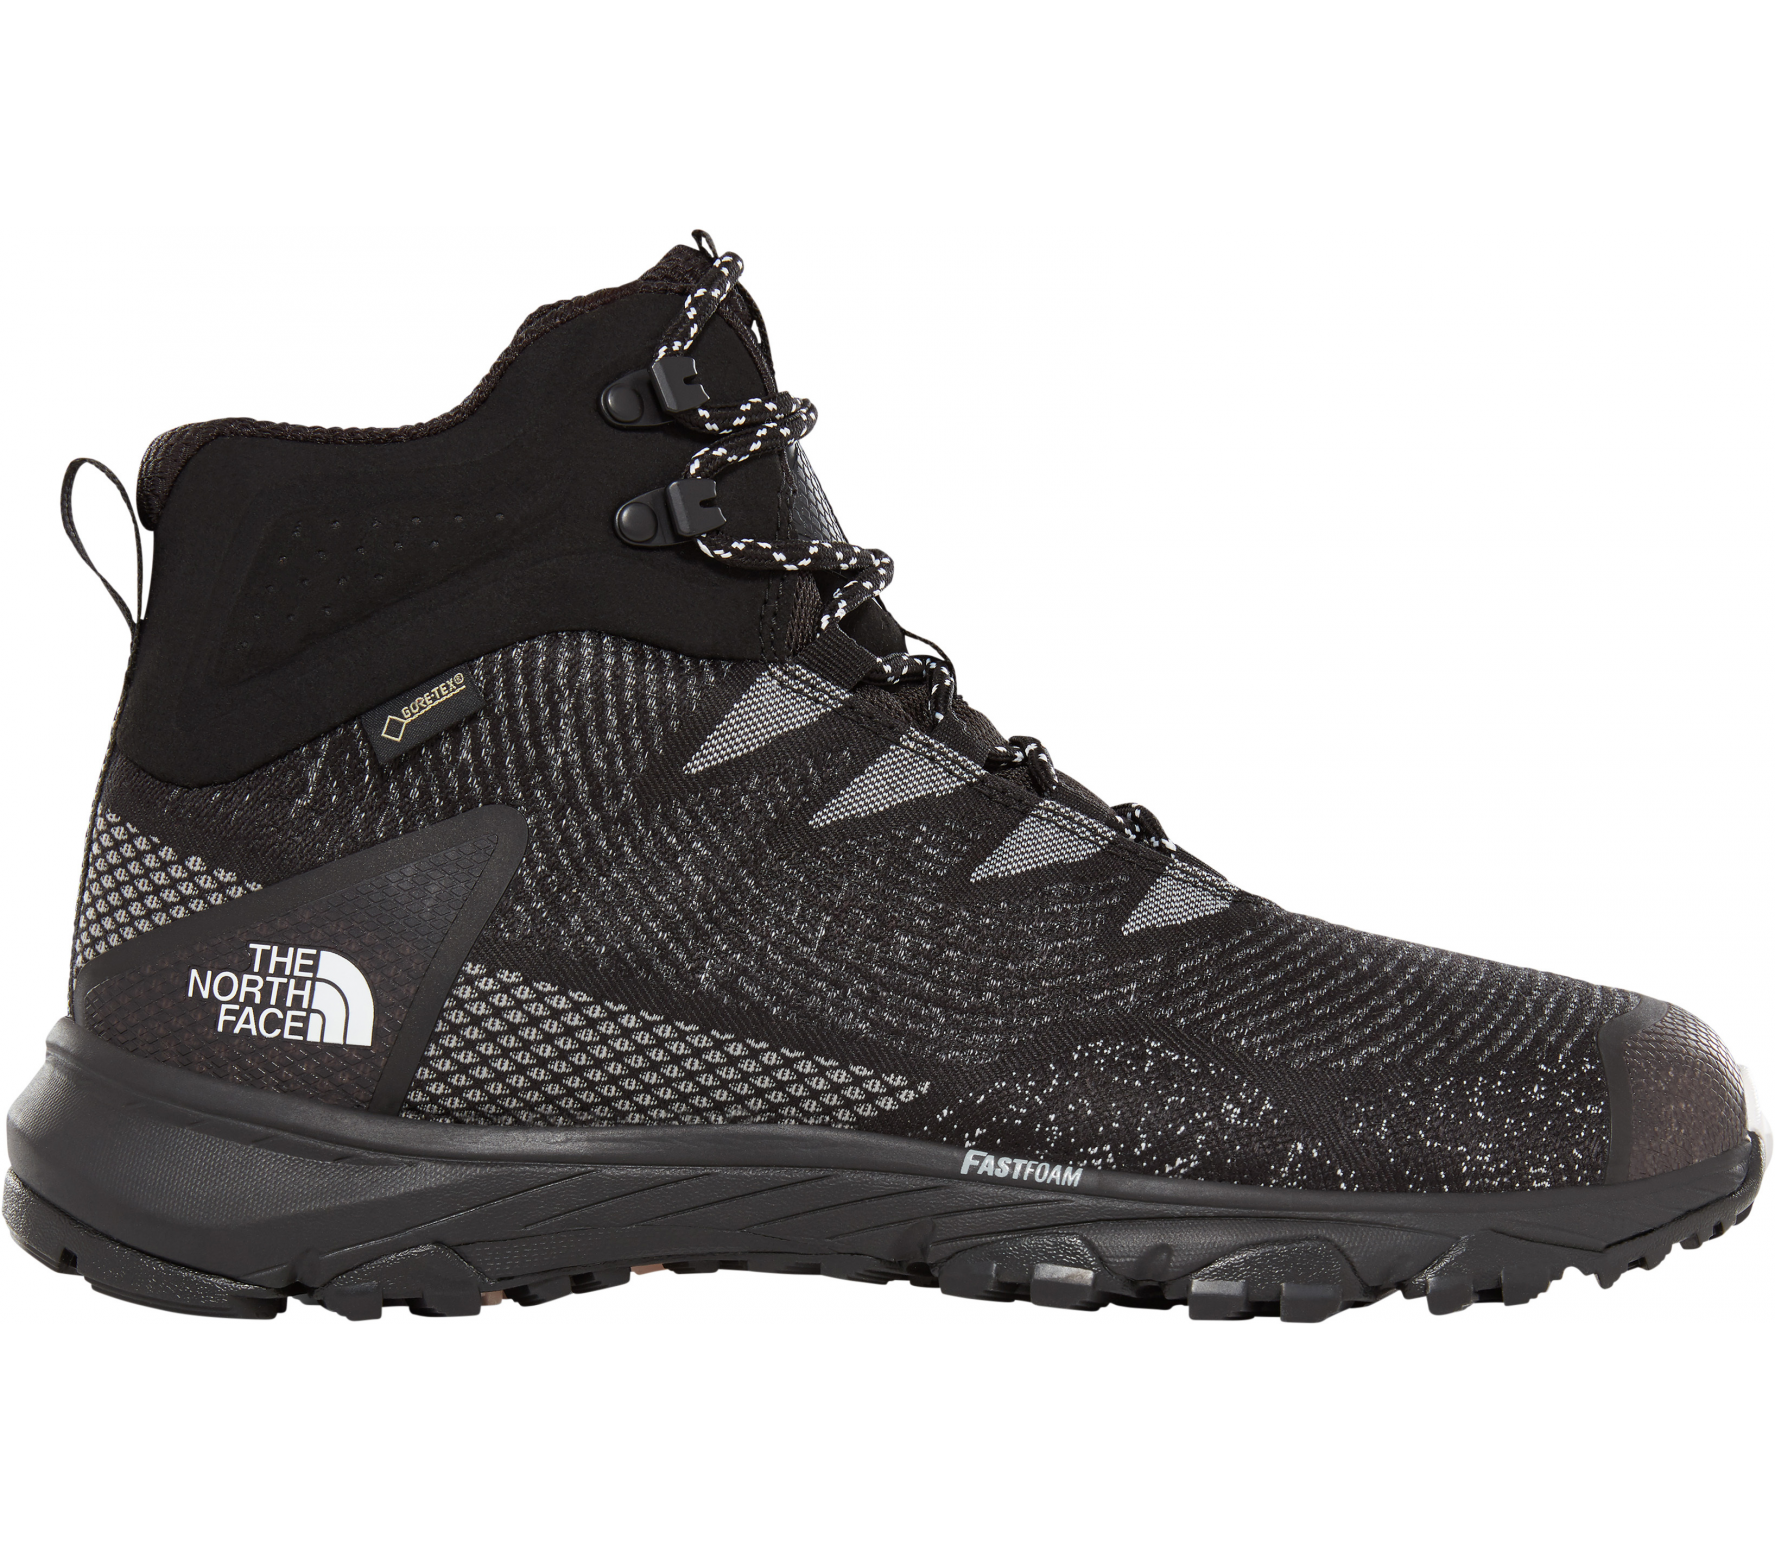 cc0ed4292 The North Face - Ultra Fastpack III Mid GTX (Woven) men s hiking shoes (